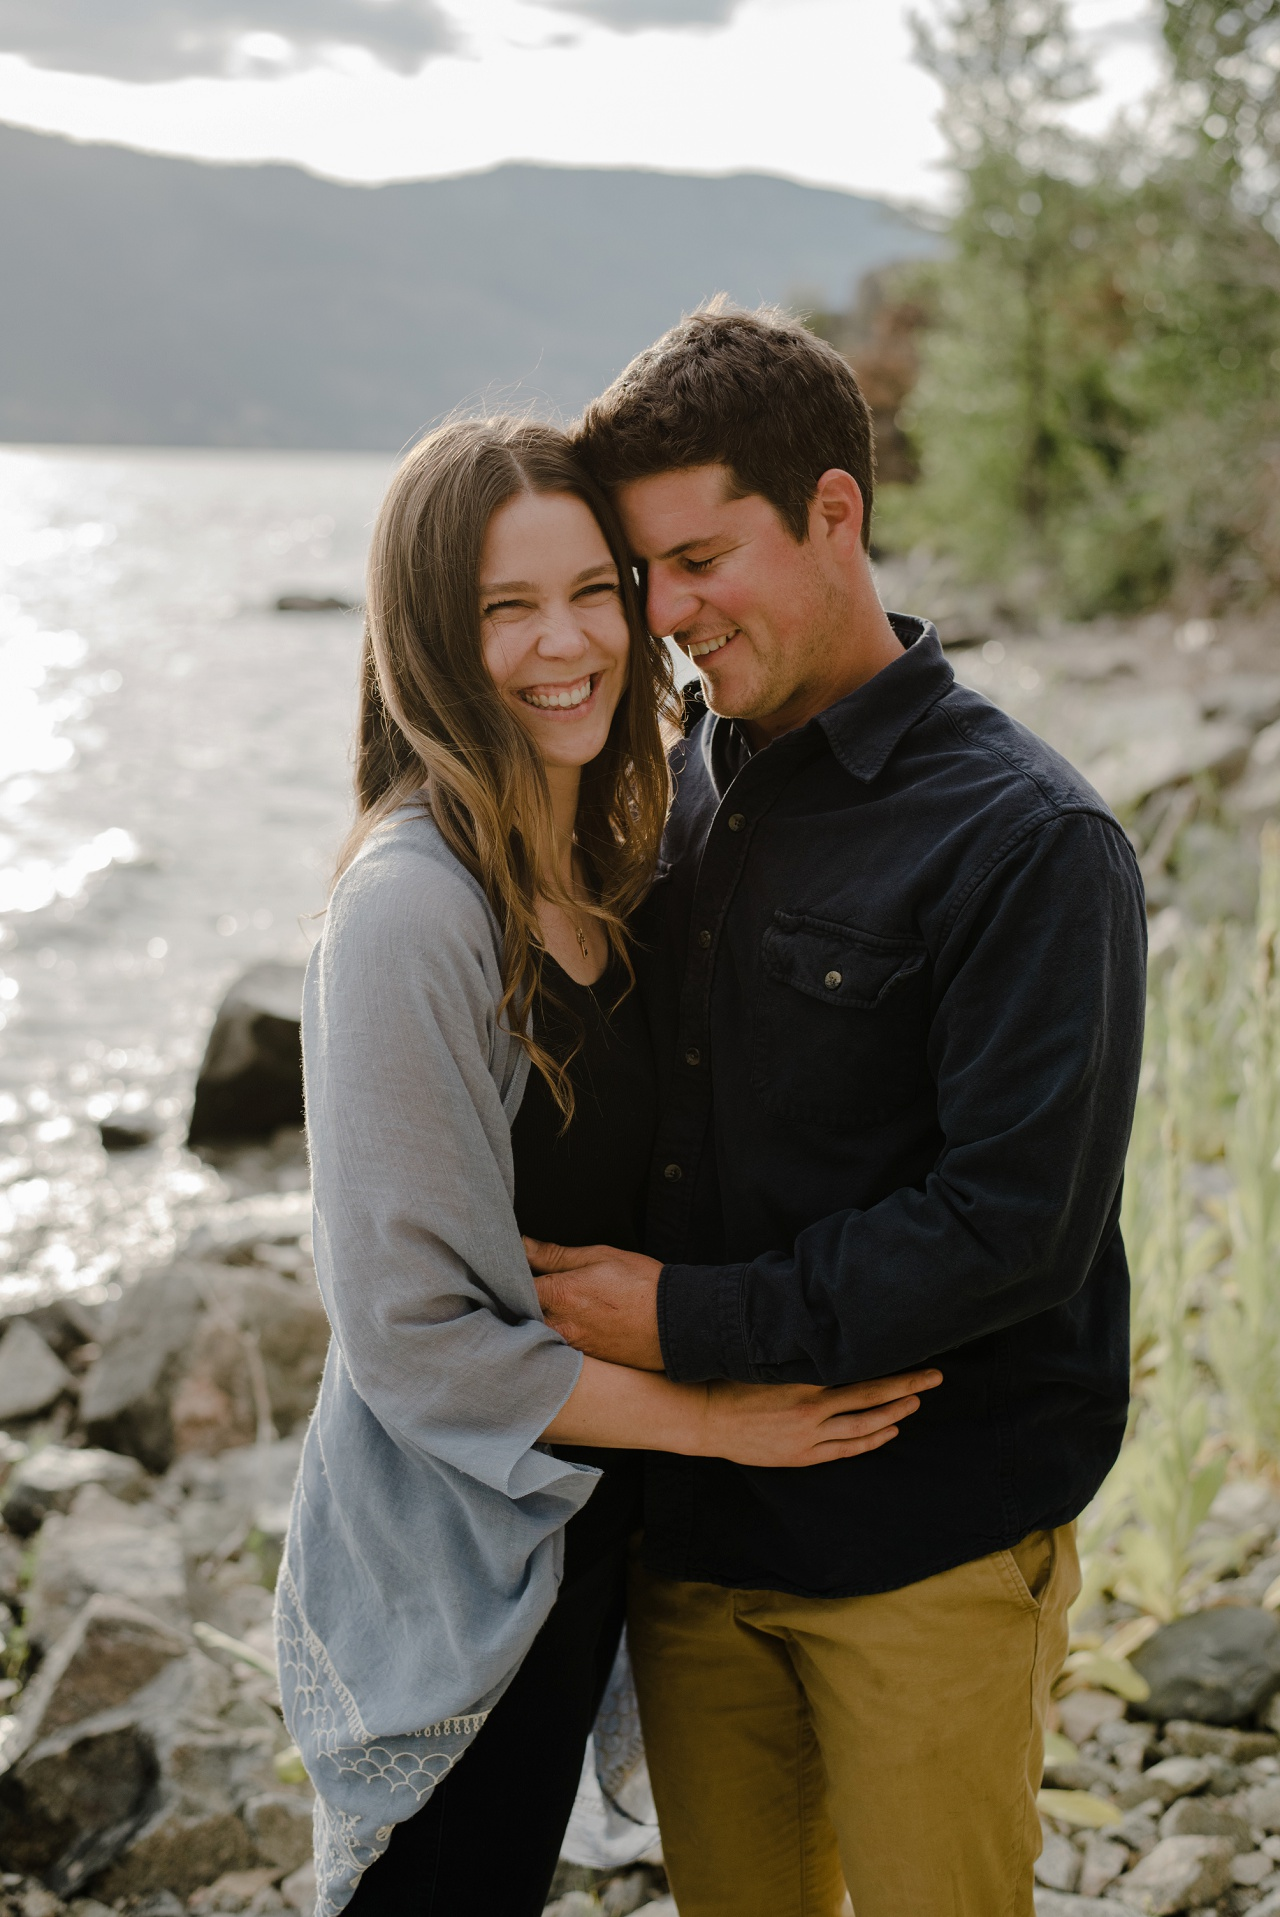 Couple smiling for engagement photos, holding each other